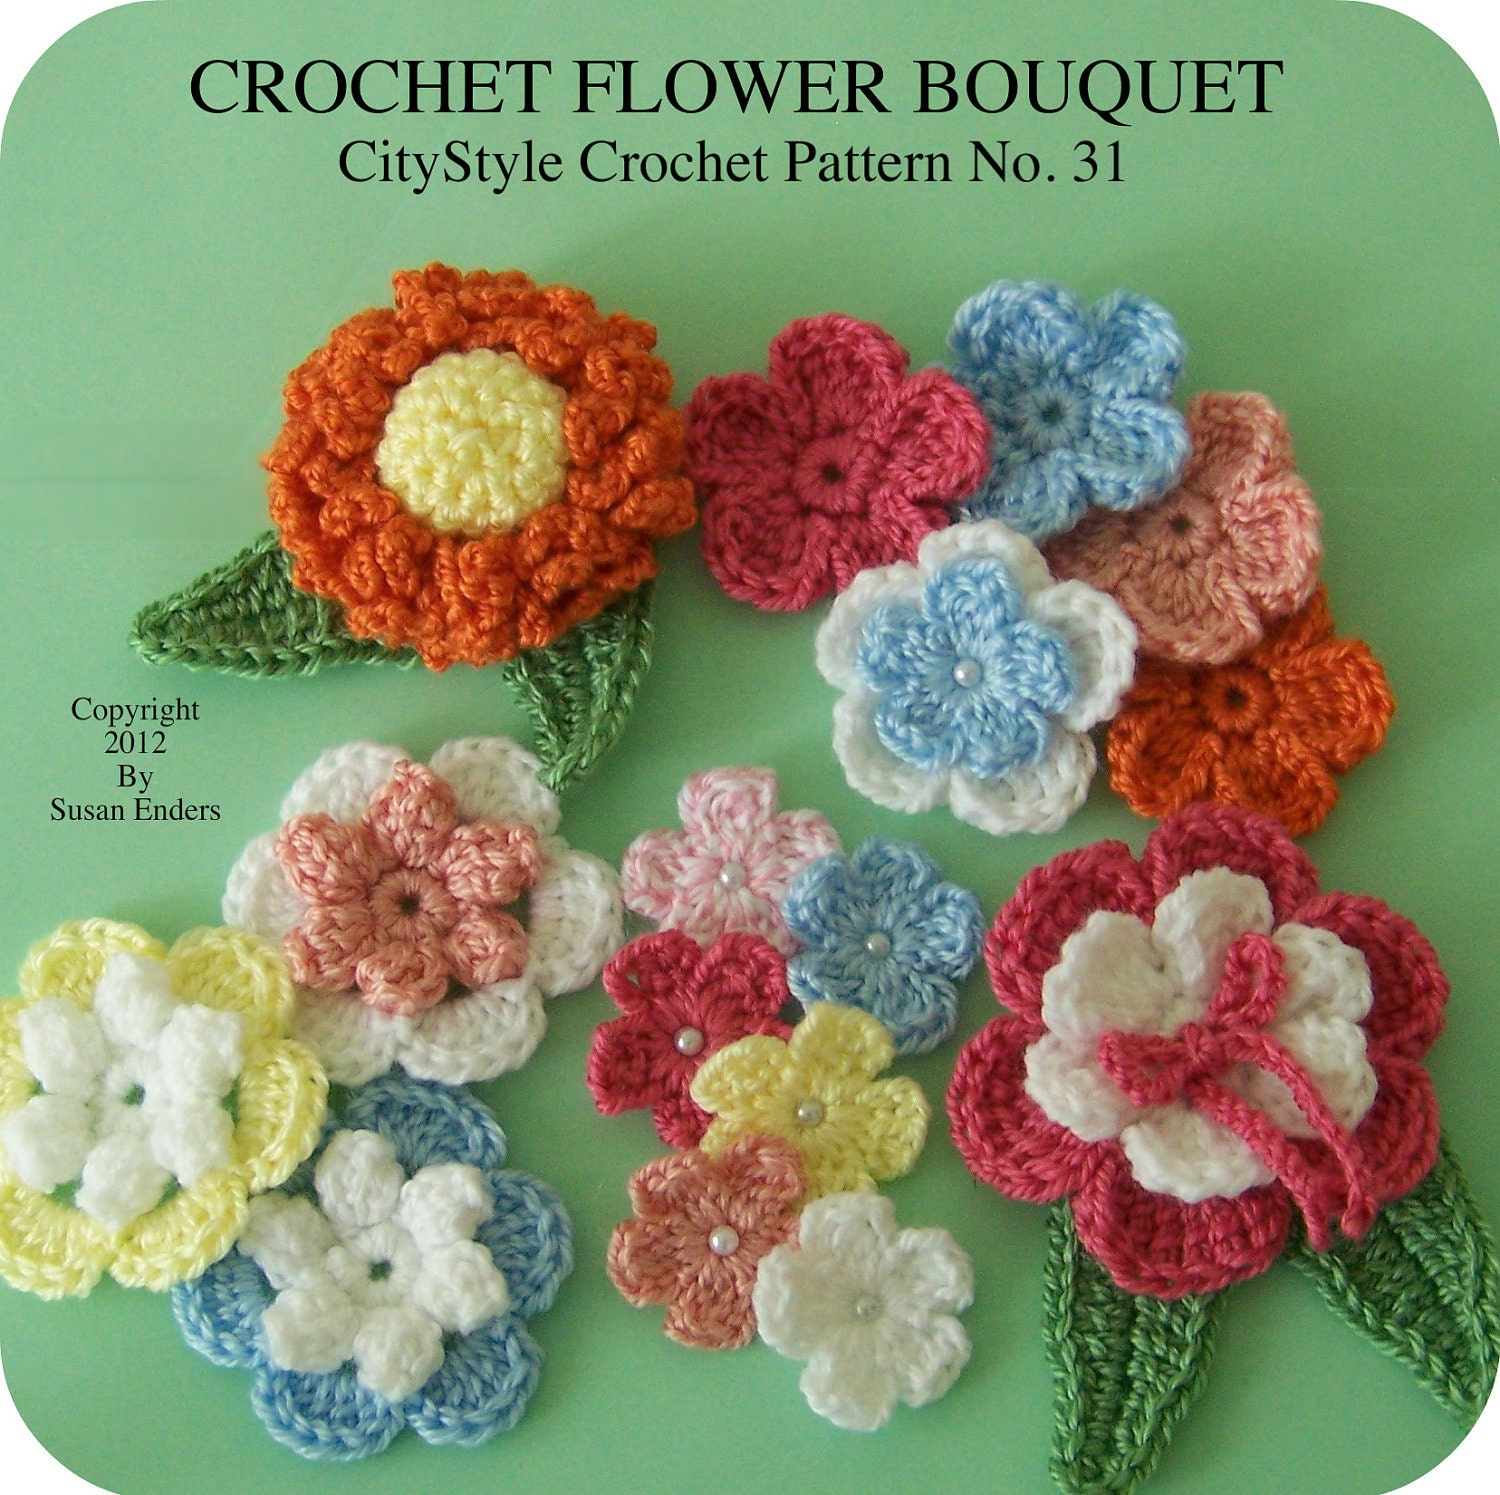 Crochet flower applique pattern crochet flowers crochet leaf etsy zoom izmirmasajfo